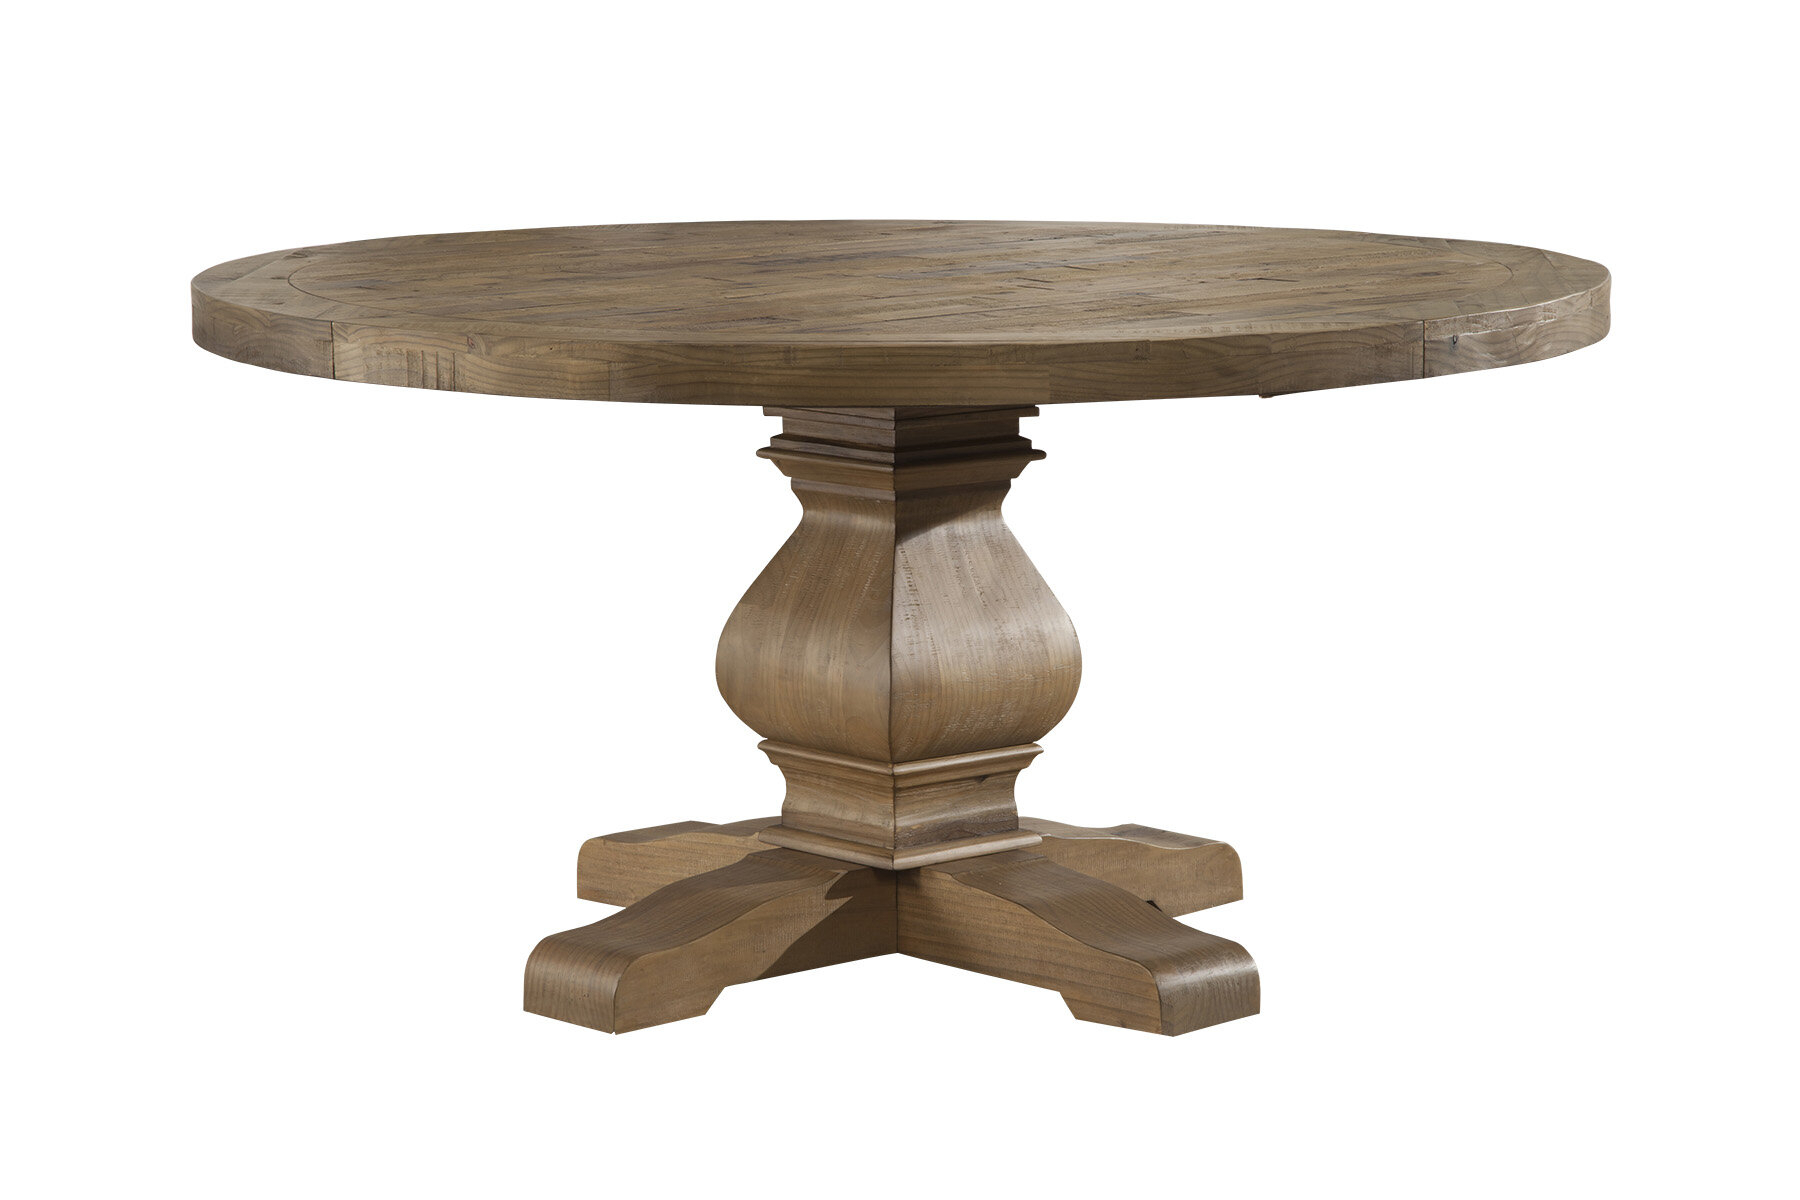 Wood Pedestal Dining Table Images – Dining Table Set Designs Throughout Most Recently Released Driftwood White Hart Reclaimed Pedestal Extending Dining Tables (Image 21 of 25)